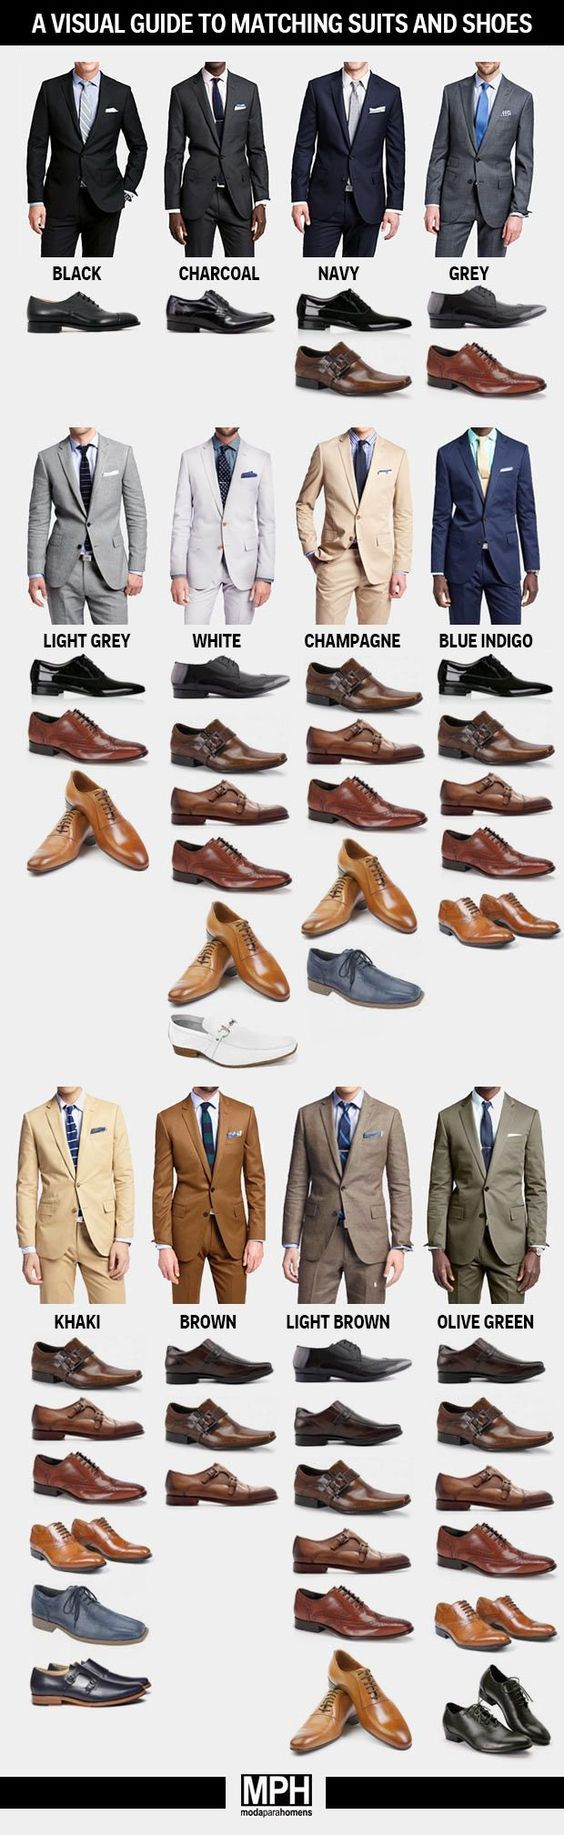 Mens Fashion: Suits & shoes (scheduled via http://www.tailwindapp.com?utm_source=pinterest&utm_medium=twpin&utm_content=post91628123&utm_campaign=scheduler_attribution) http://www.99wtf.net/men/mens-fasion/ideas-choosing-mens-outfit-colors-mens-fashion-2016/